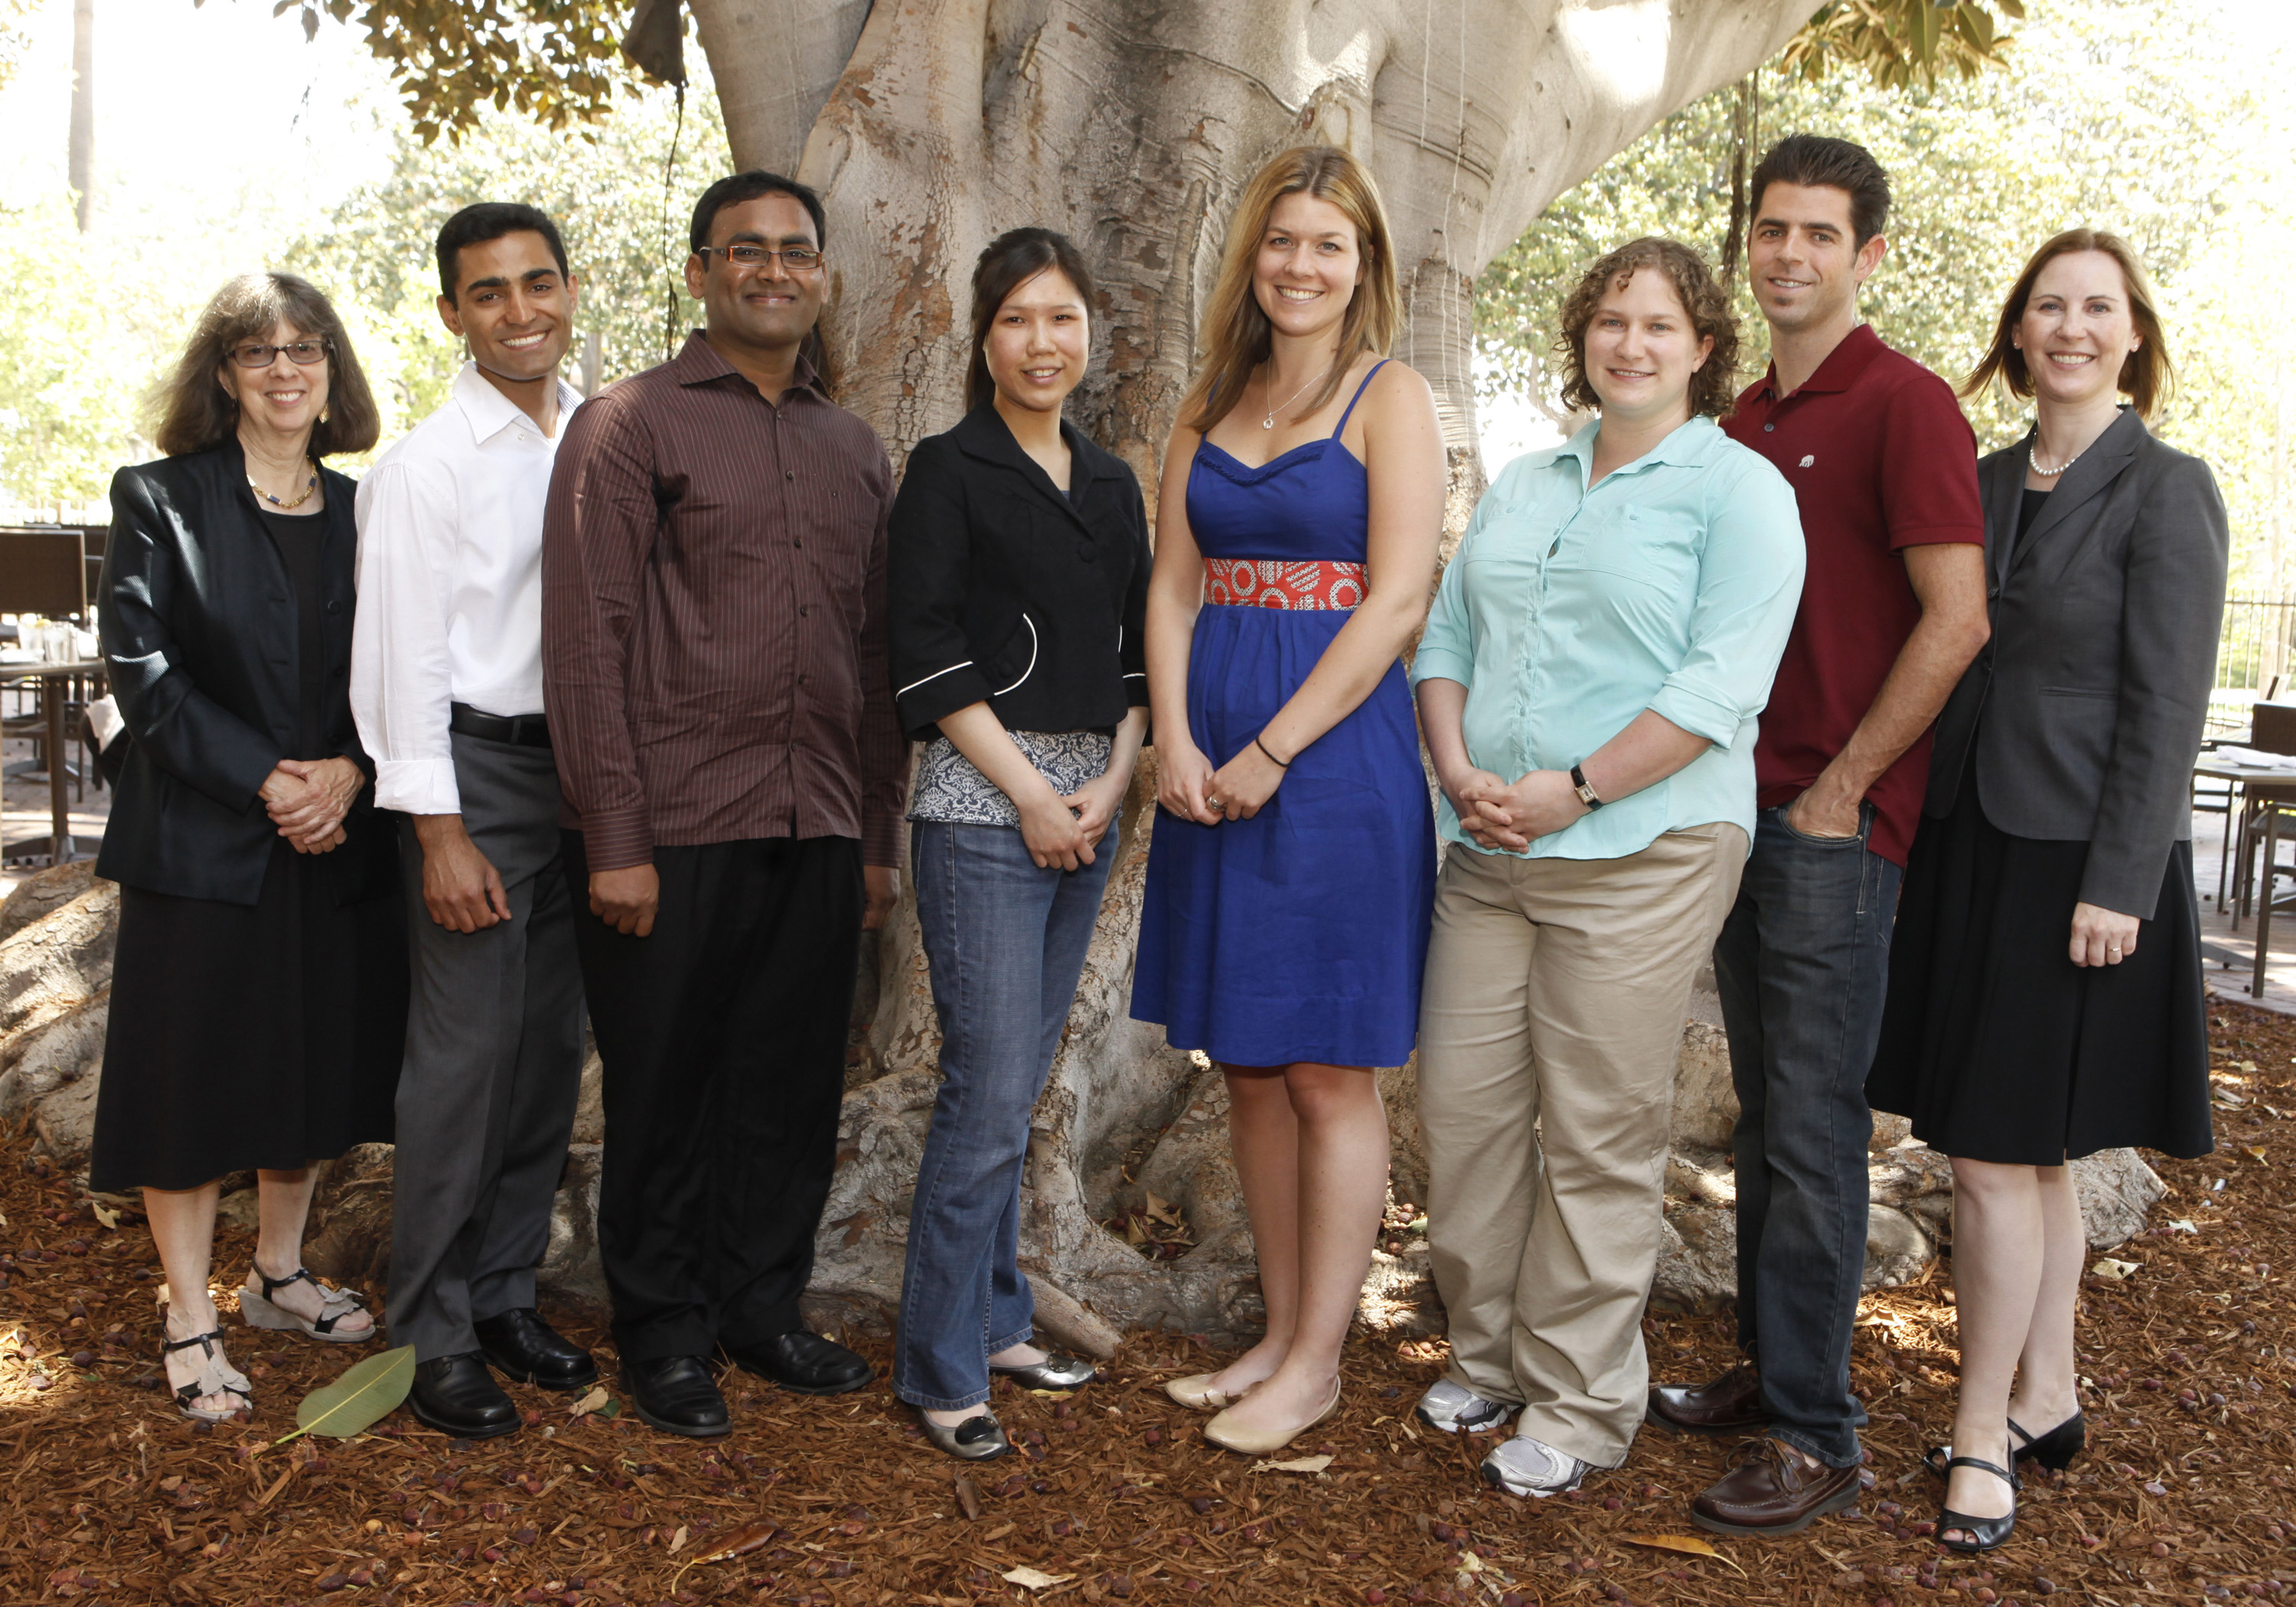 2012 USC Ph.D. Achievement Award recipients